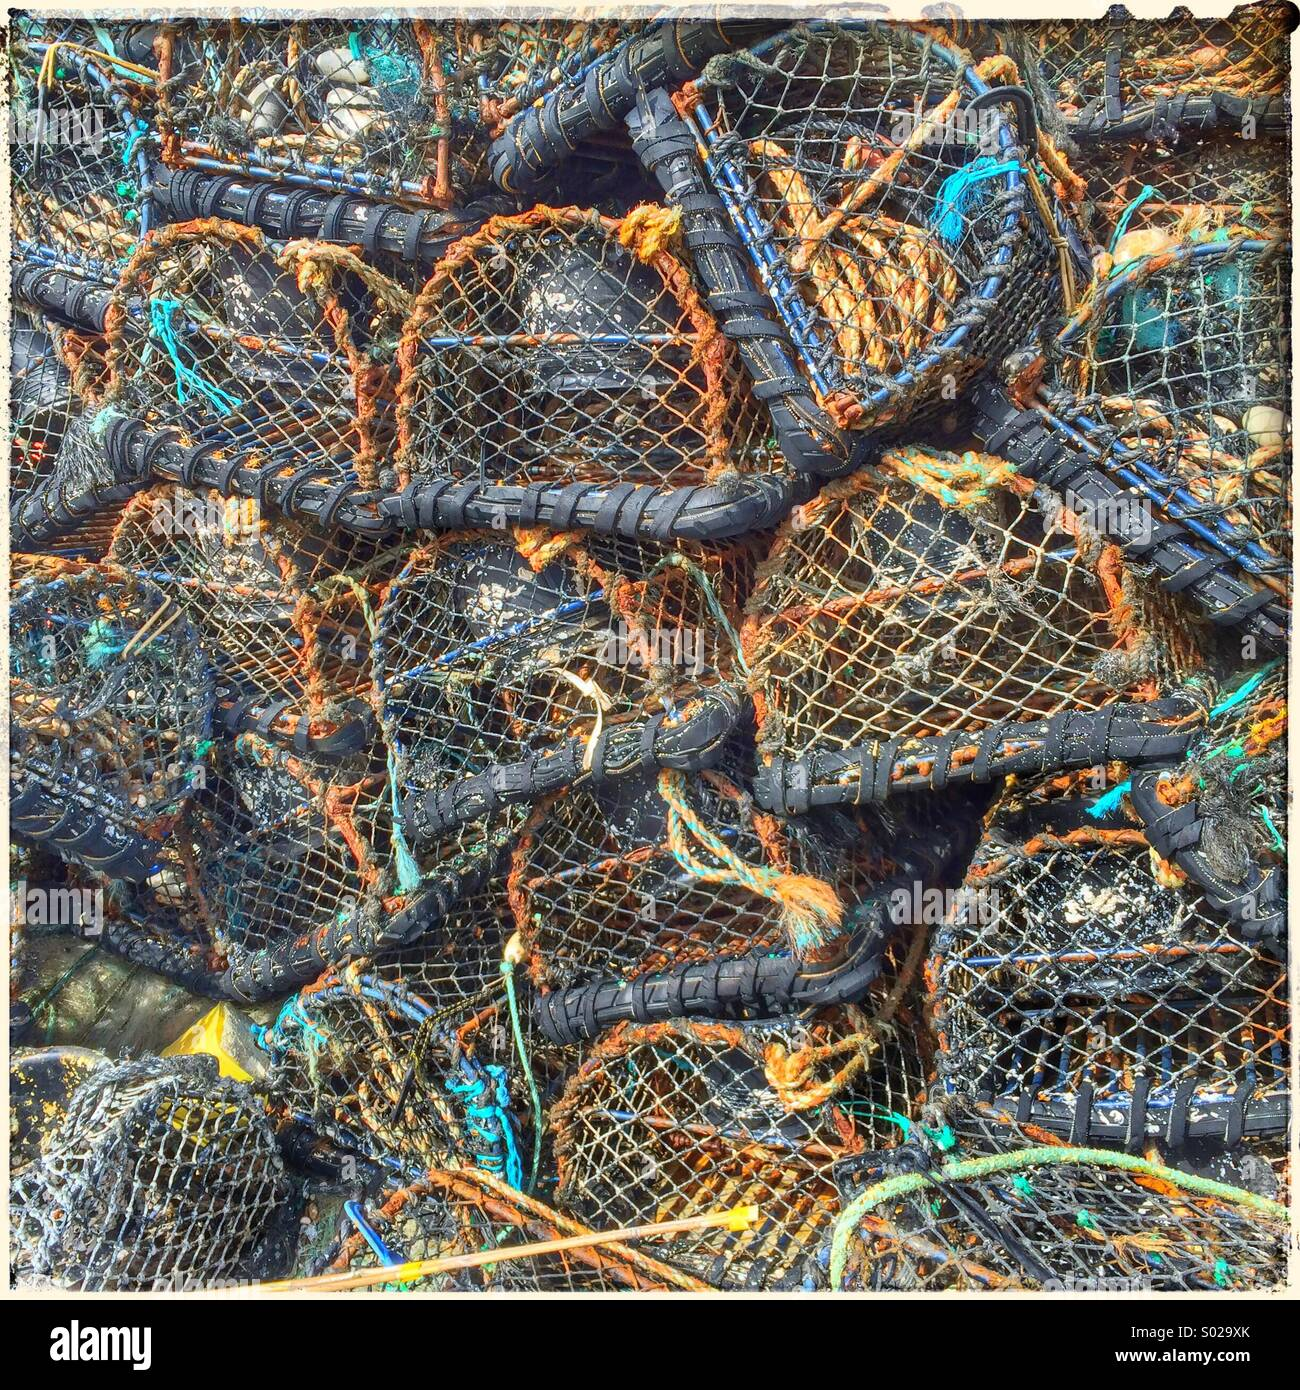 Lobster and crab fishing pots piled up on beach - Stock Image